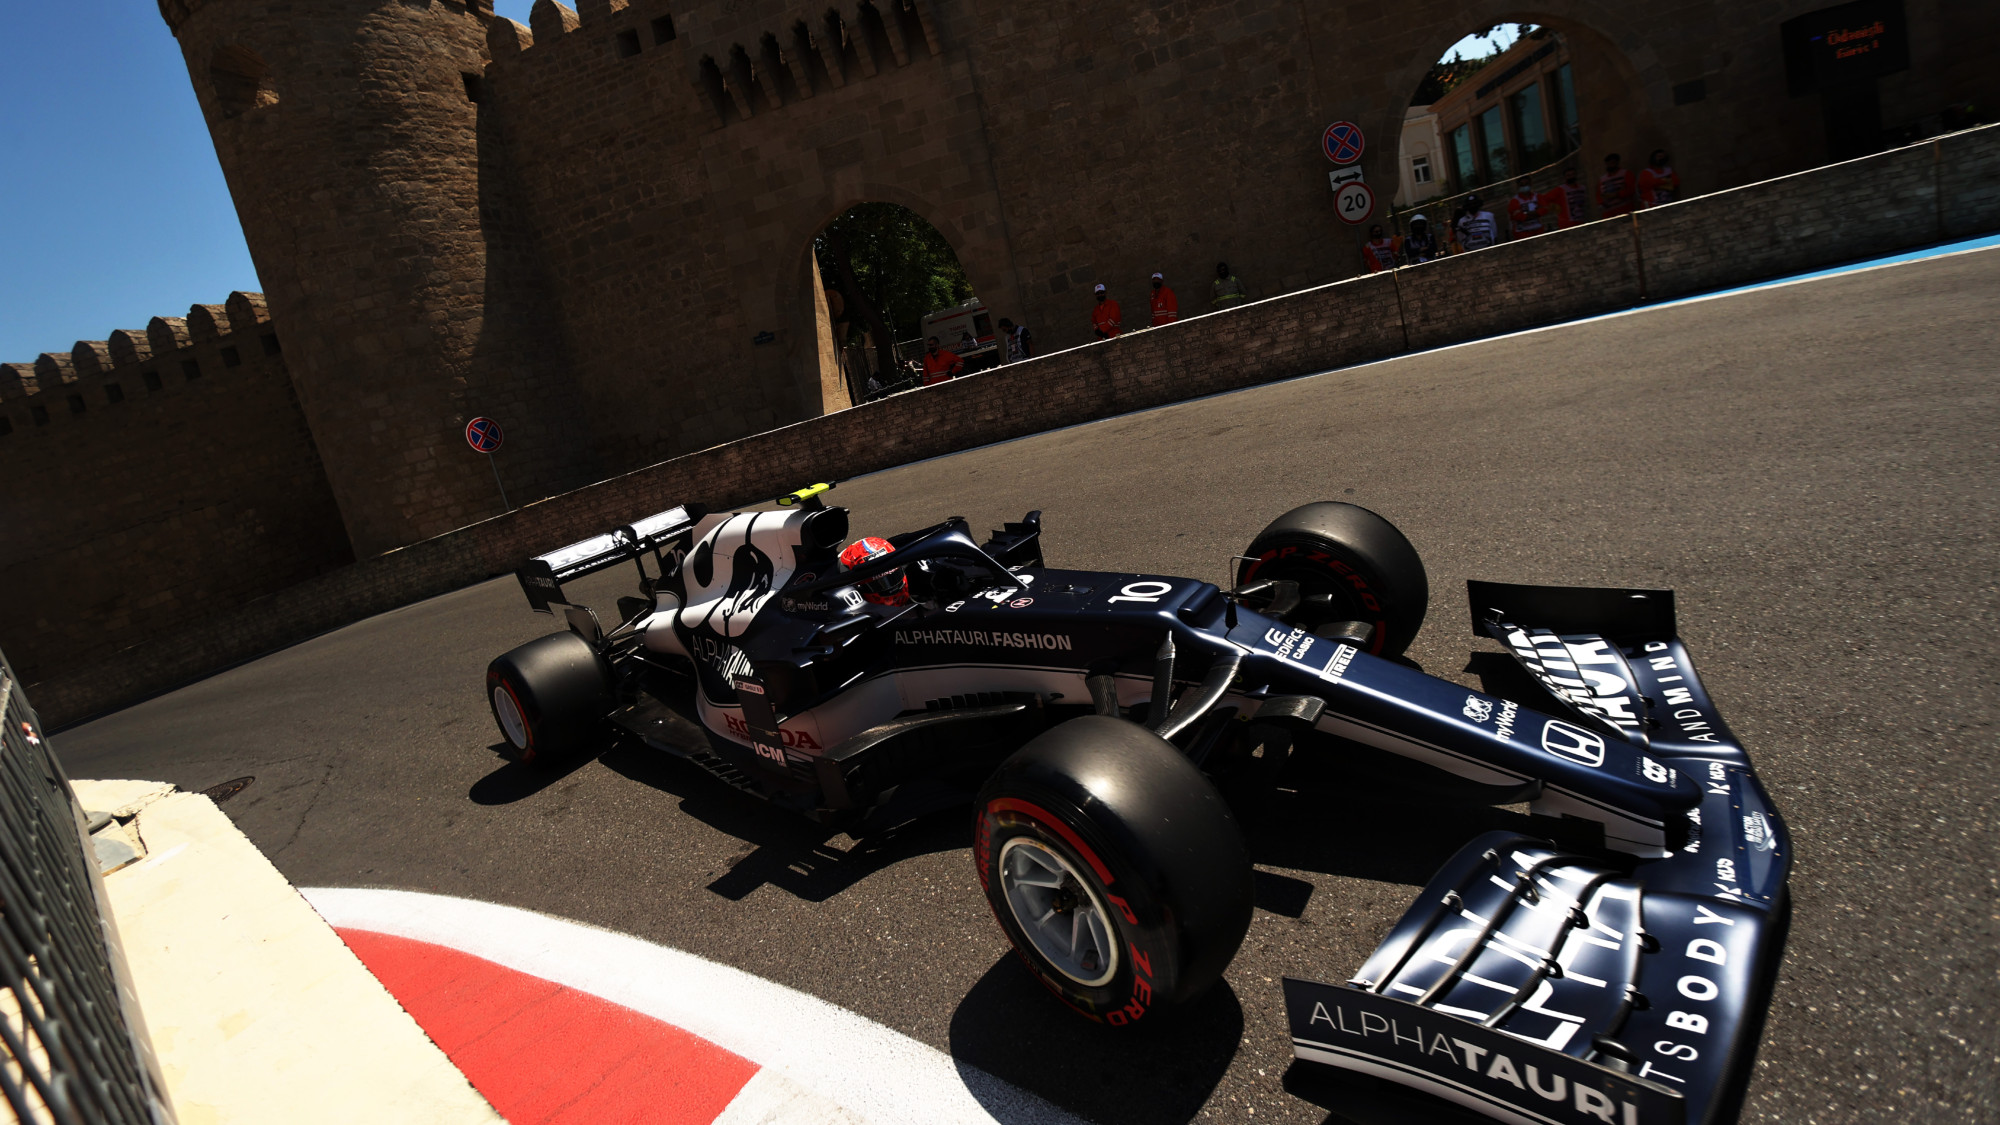 Gasly tops chaotic FP3 as Verstappen crashes: 2021 Azerbaijan Grand Prix practice round-up